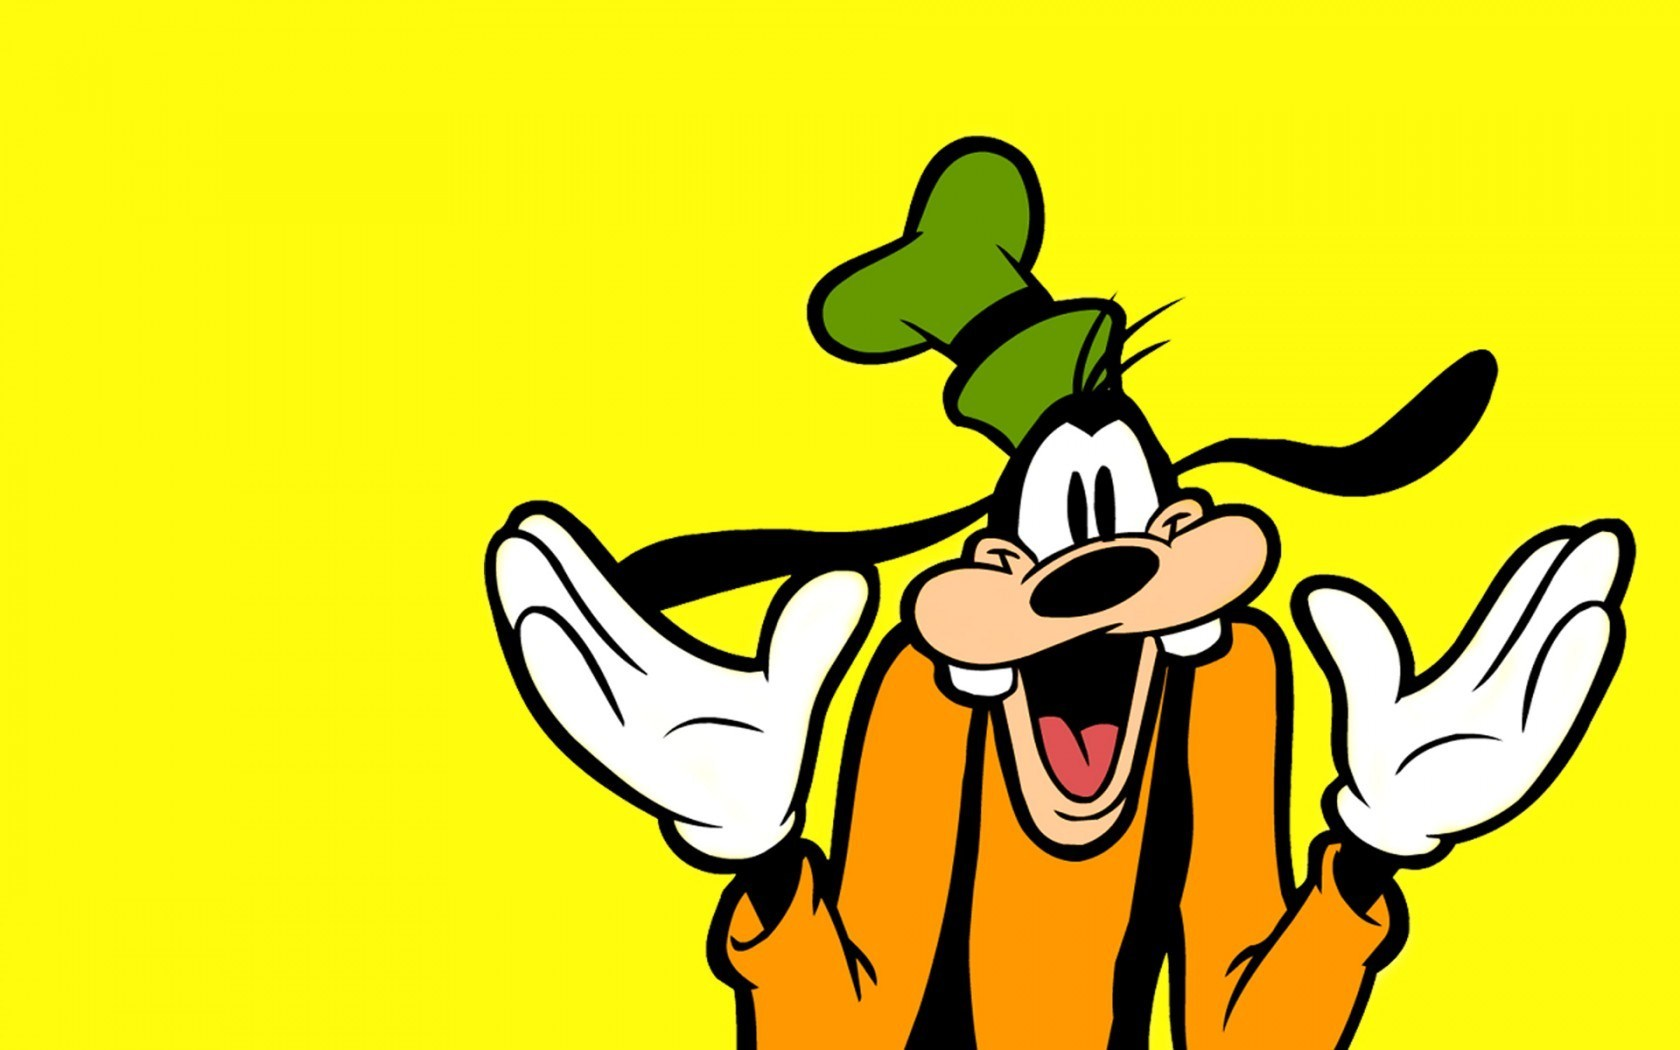 Goofy Walt Disney Cartoon